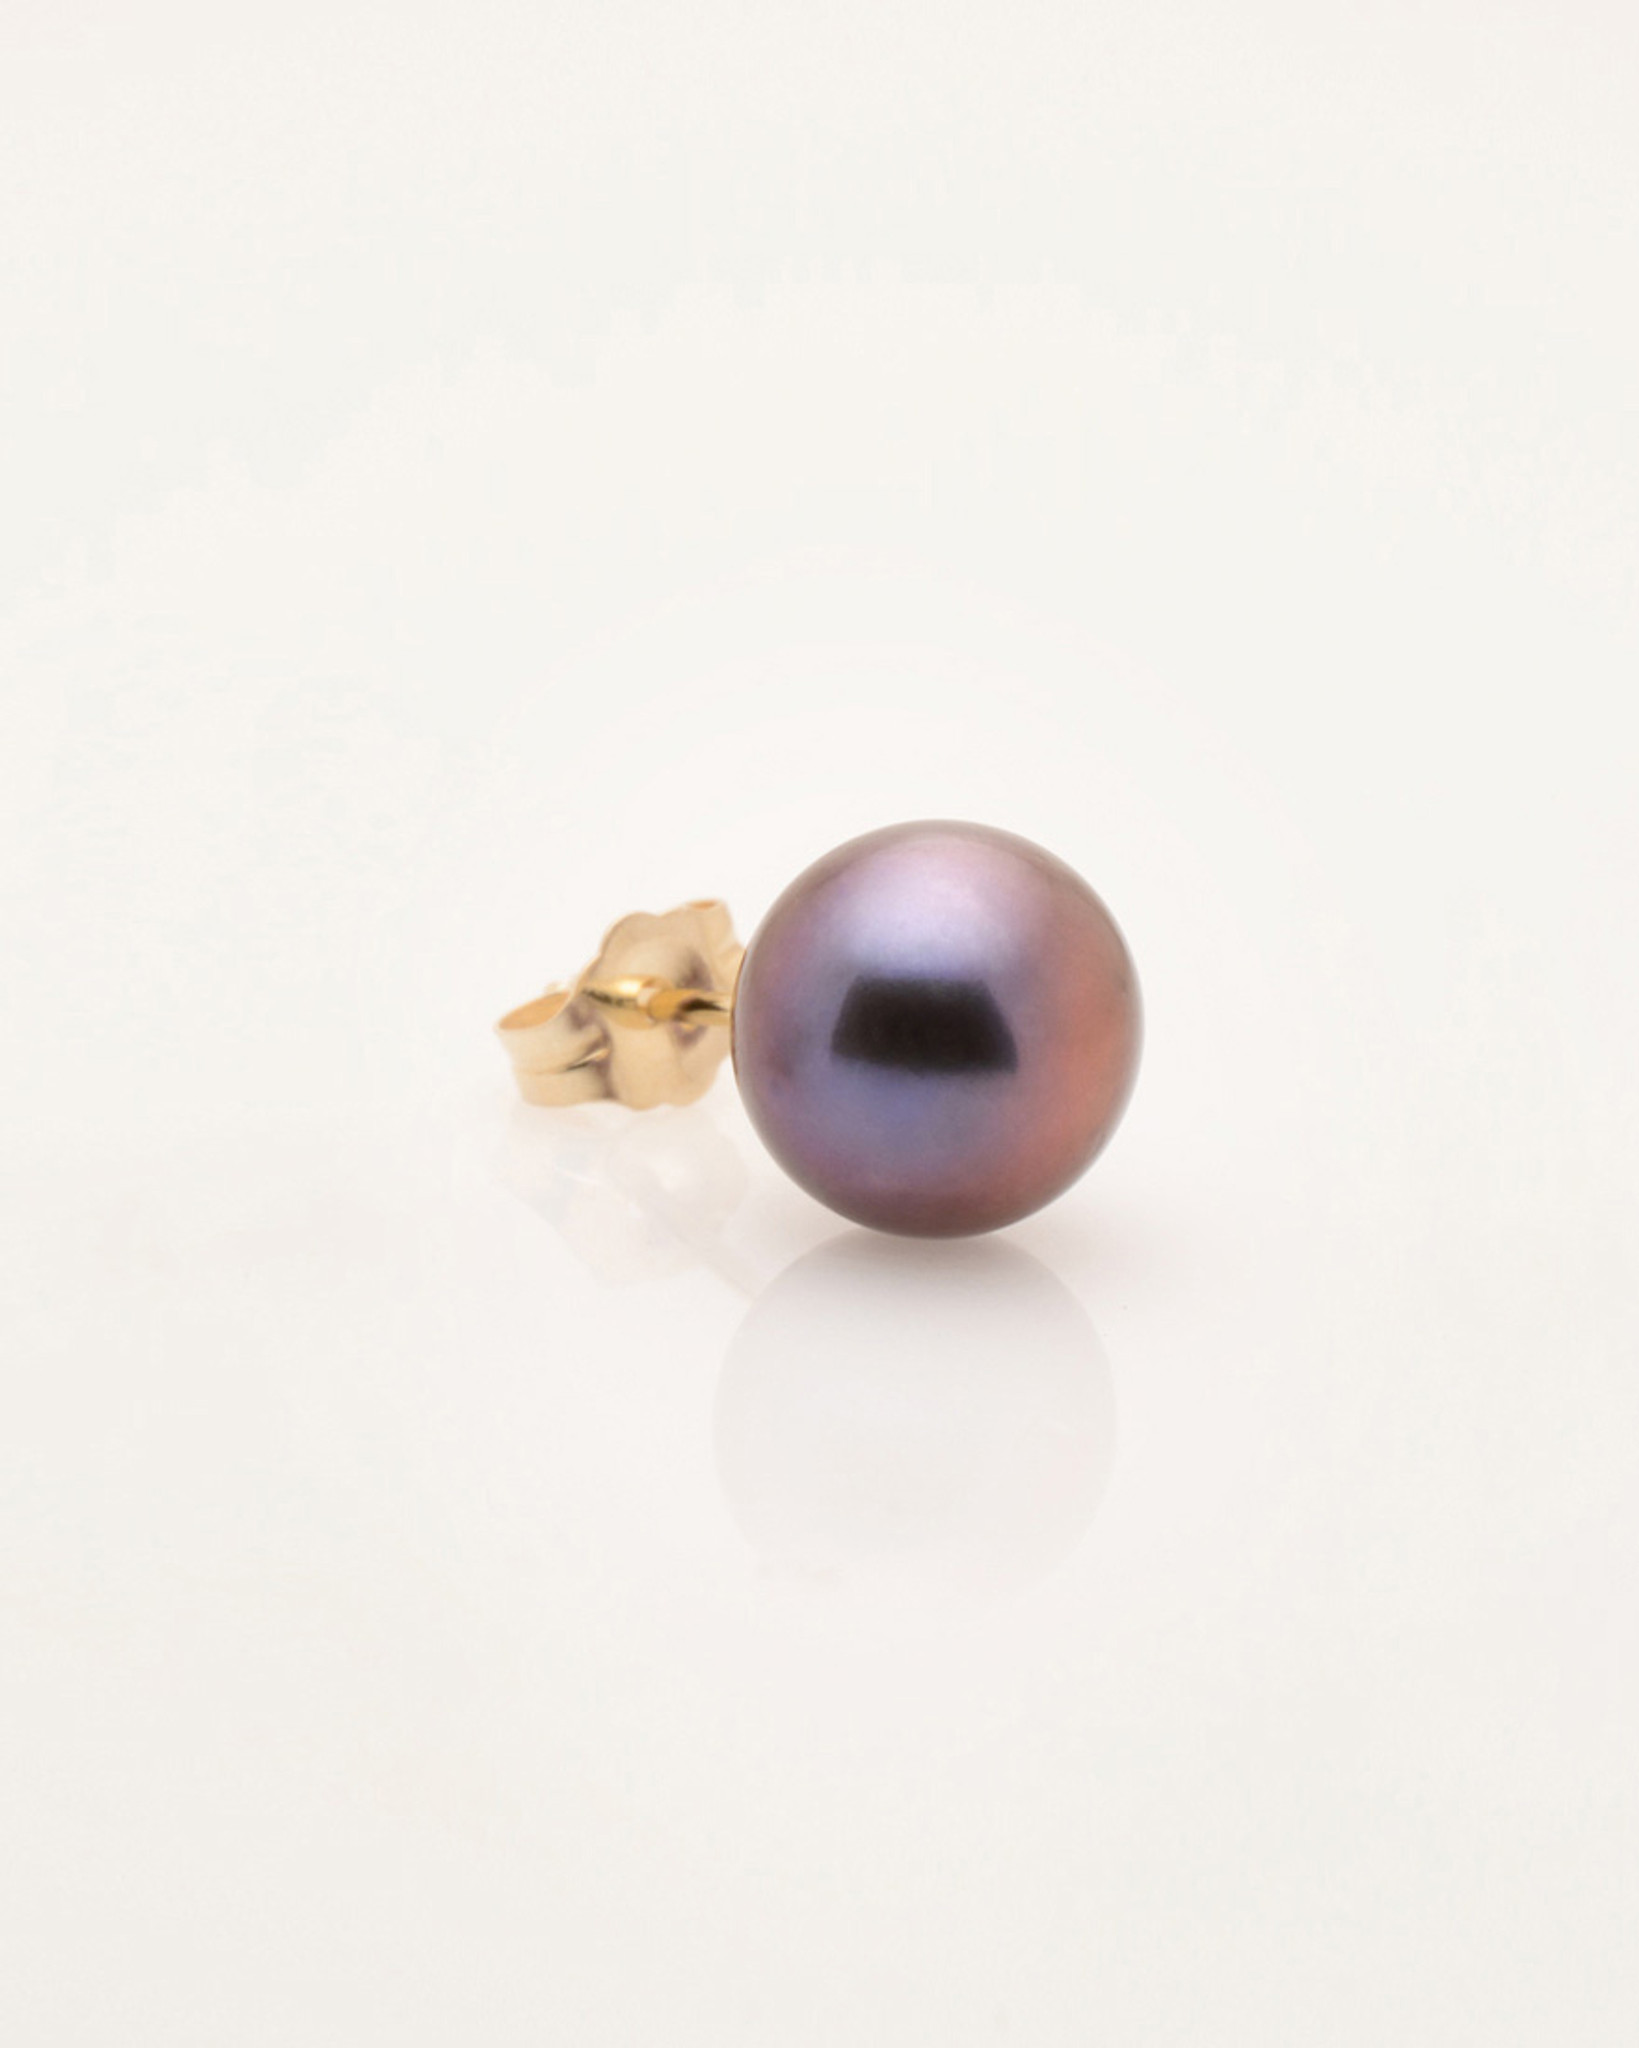 6mm Black Pearl Earring by Nektar De Stagni. Mix and Match with any other single earring style.